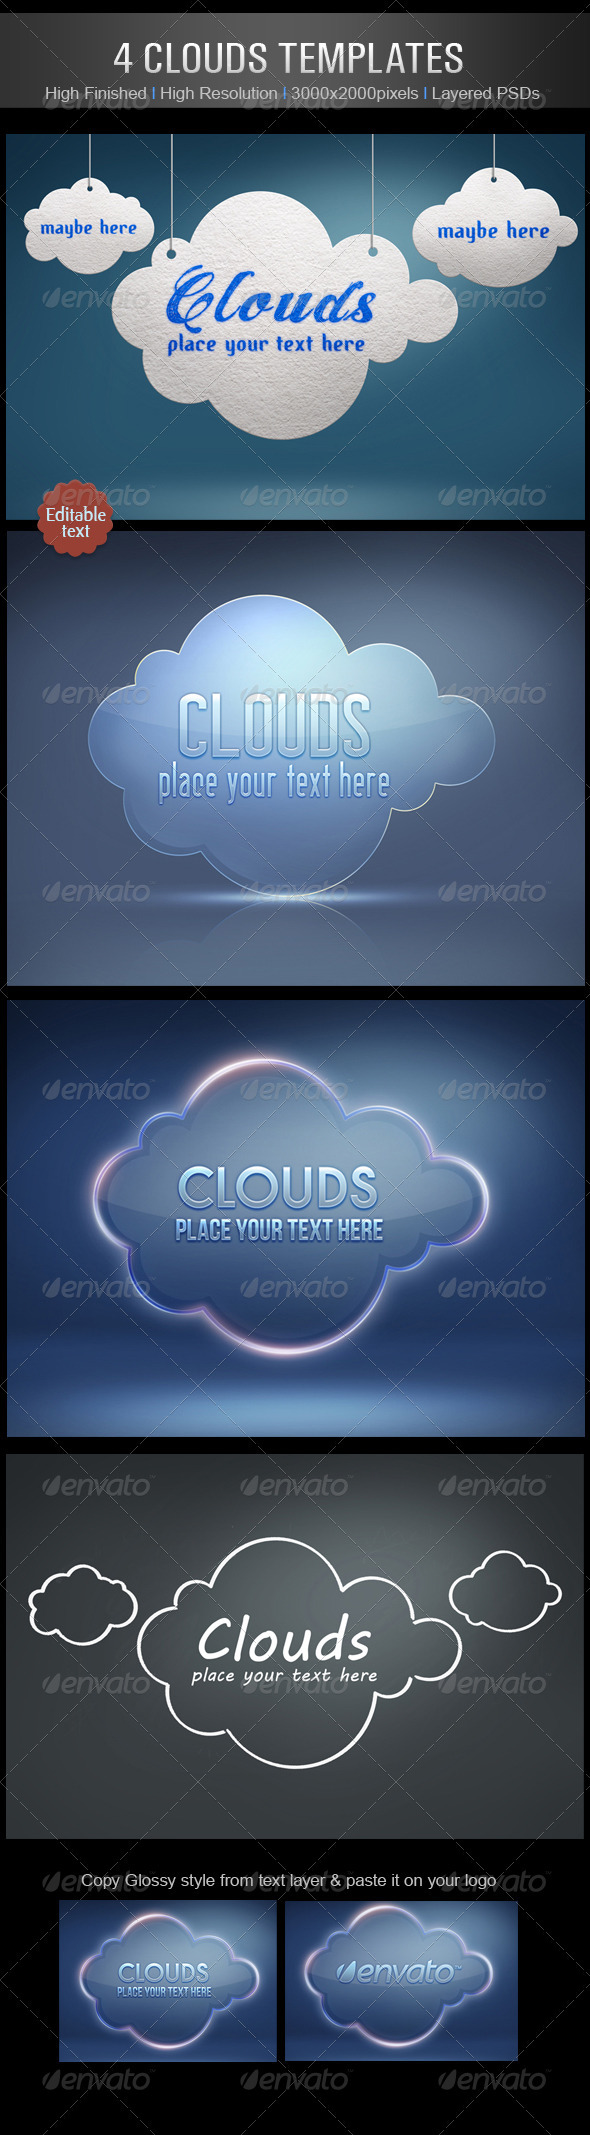 GraphicRiver 4 Clouds Templates 2977636